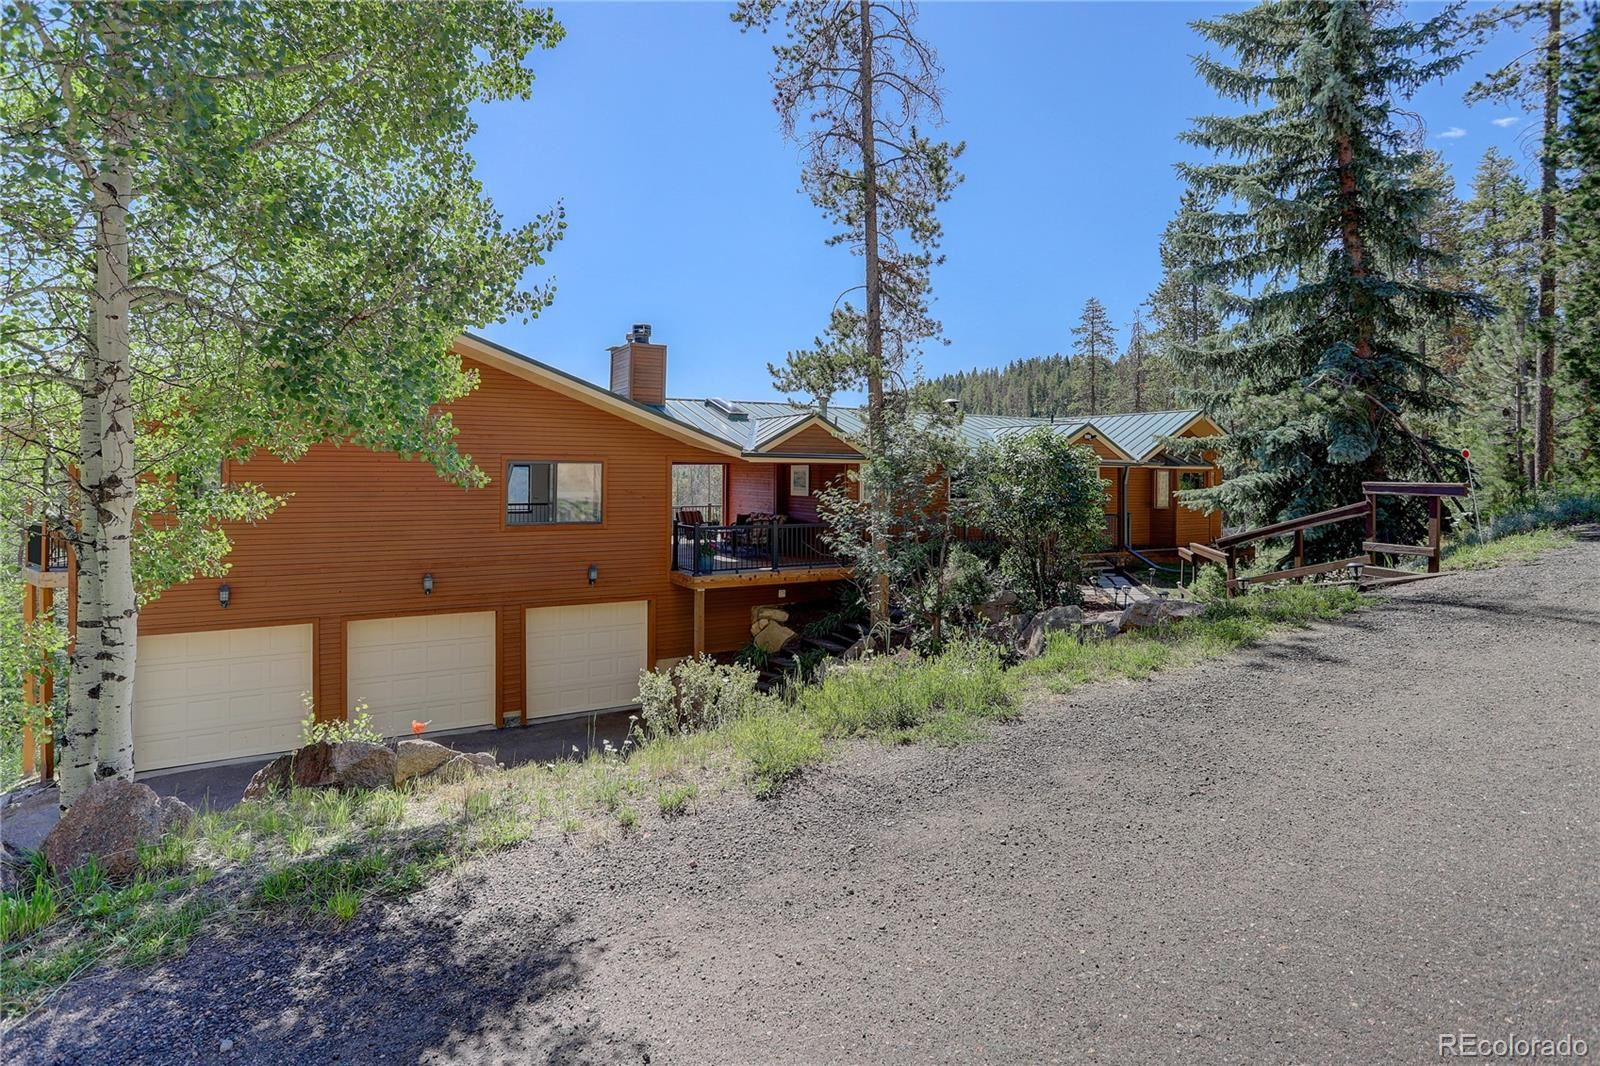 7362 Brook Forest Way, Evergreen, CO 80439 - #: 5625500